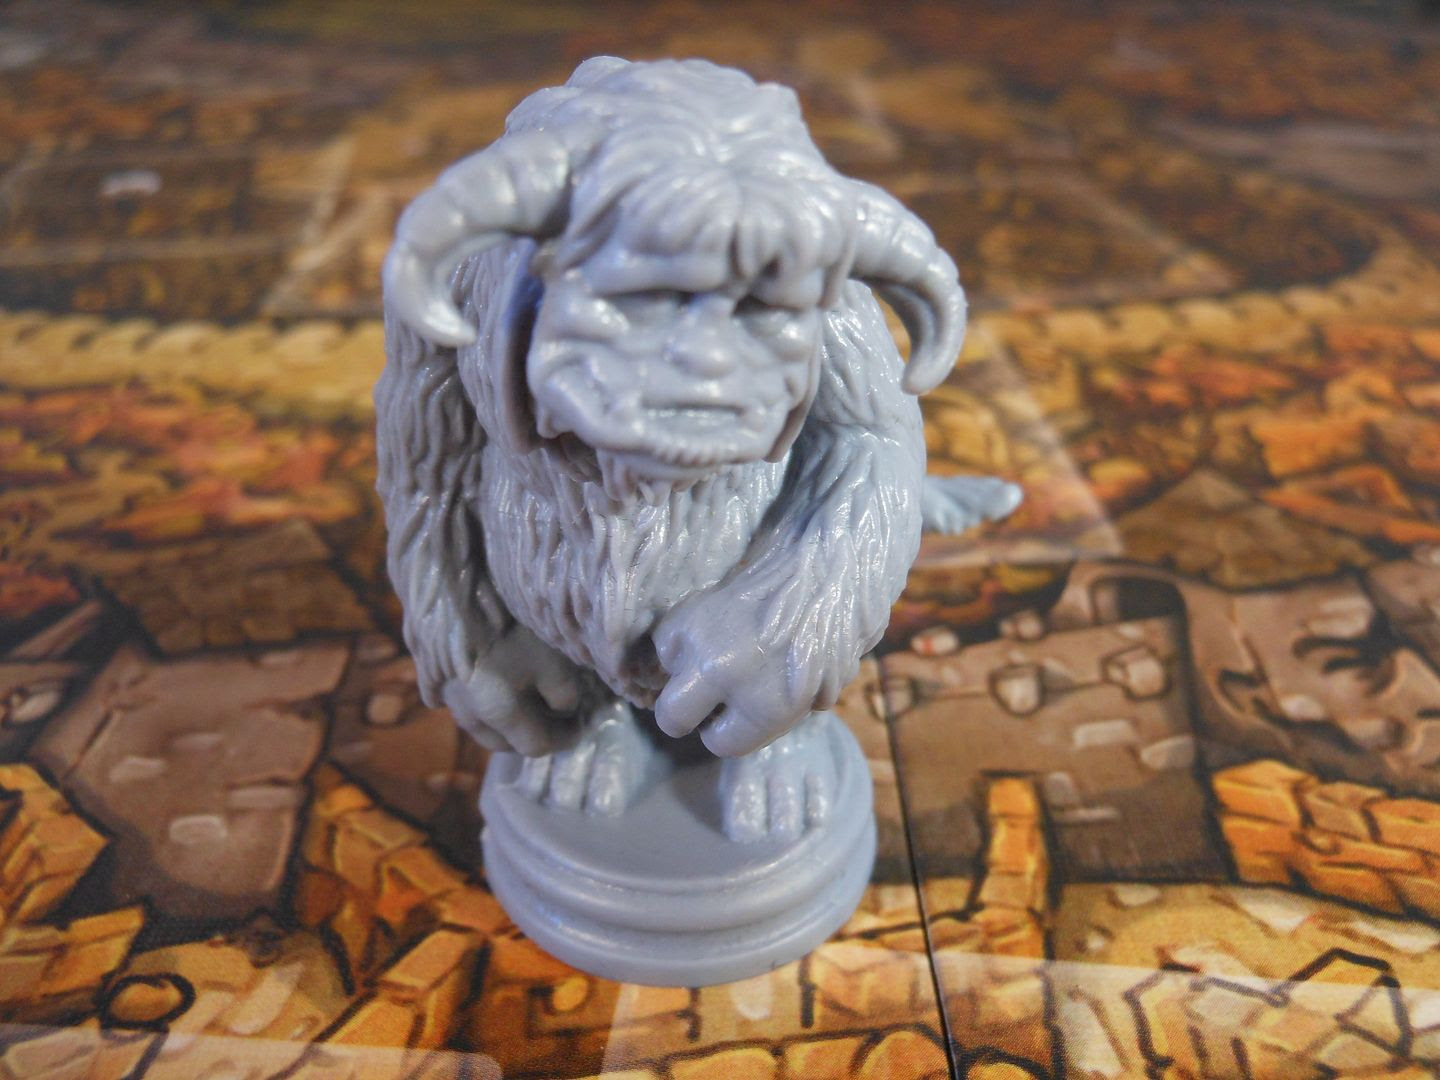 Ludo worries about smelling bad in Jim Henson's Labyrinth: The Board Game.